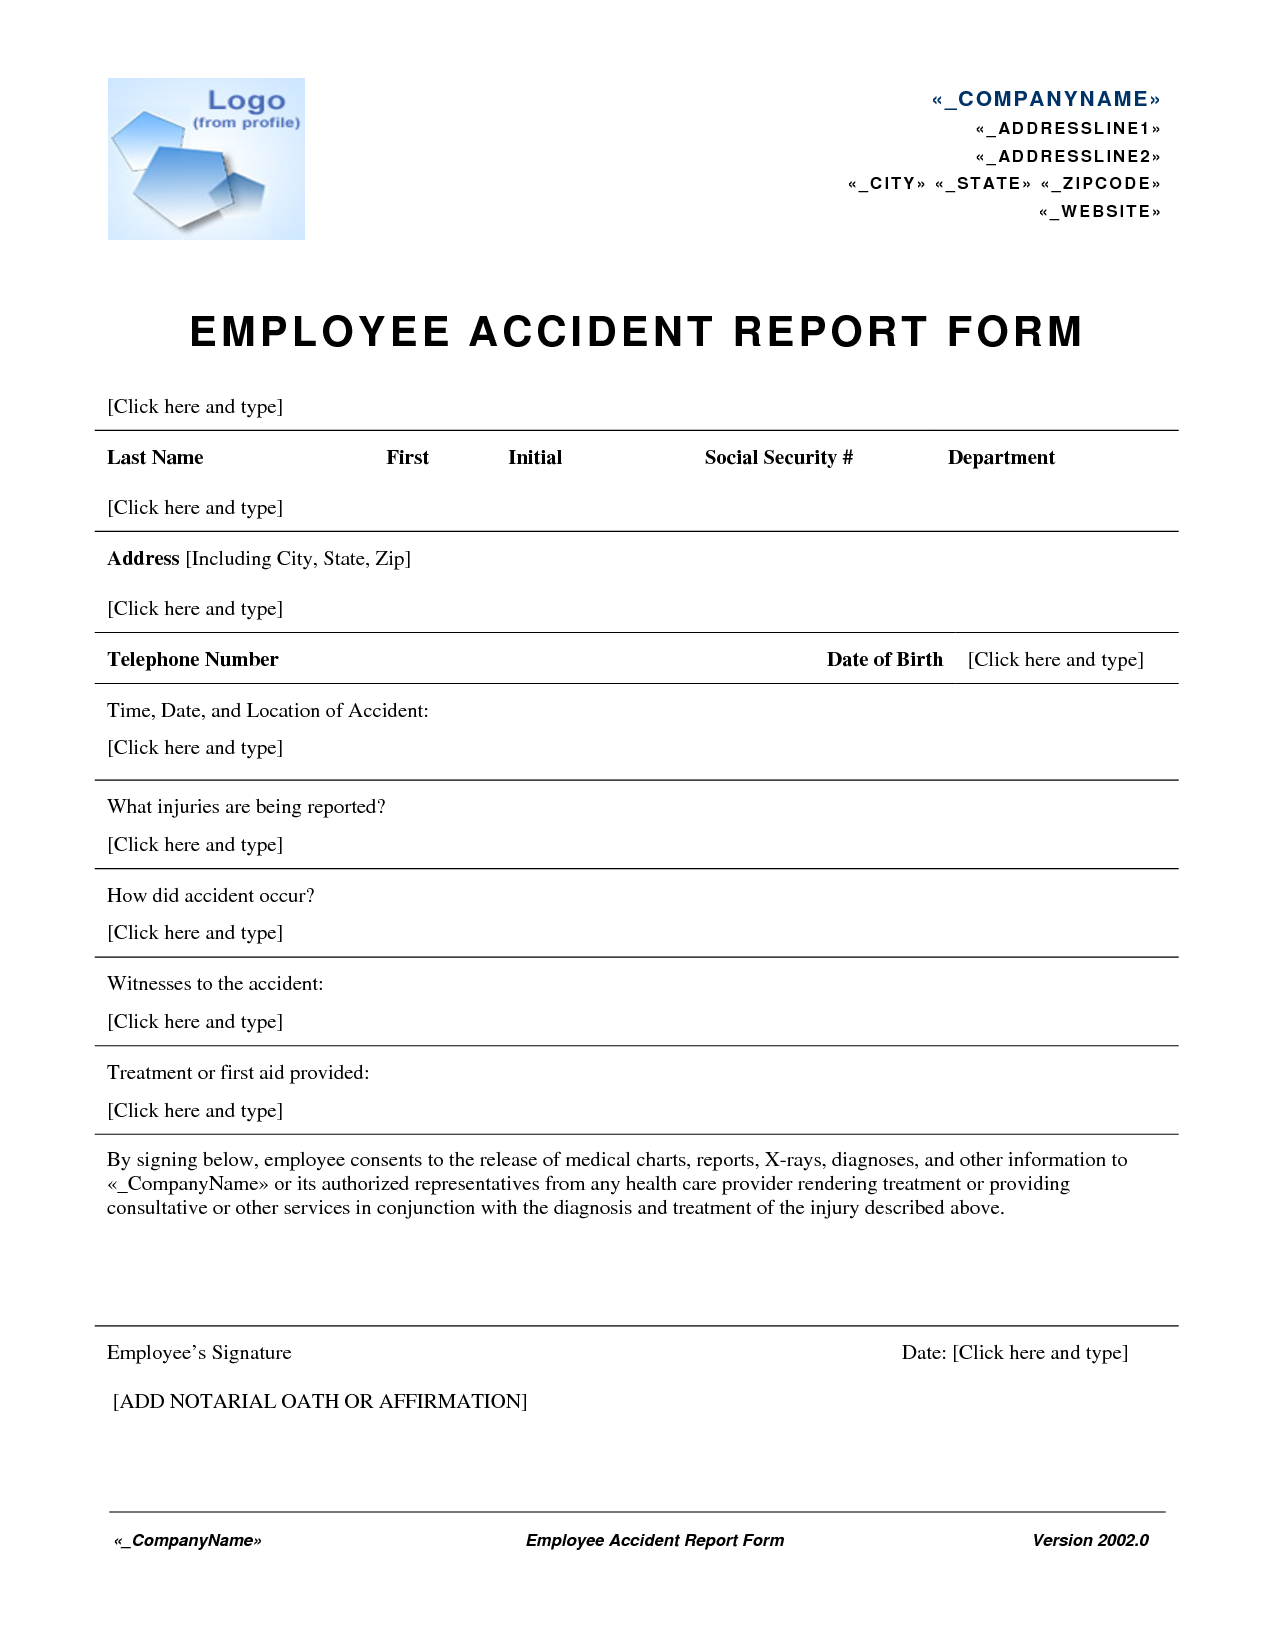 Incident Report Form Workplace Health And Safety Sample Letter In Throughout Health And Safety Incident Report Form Template